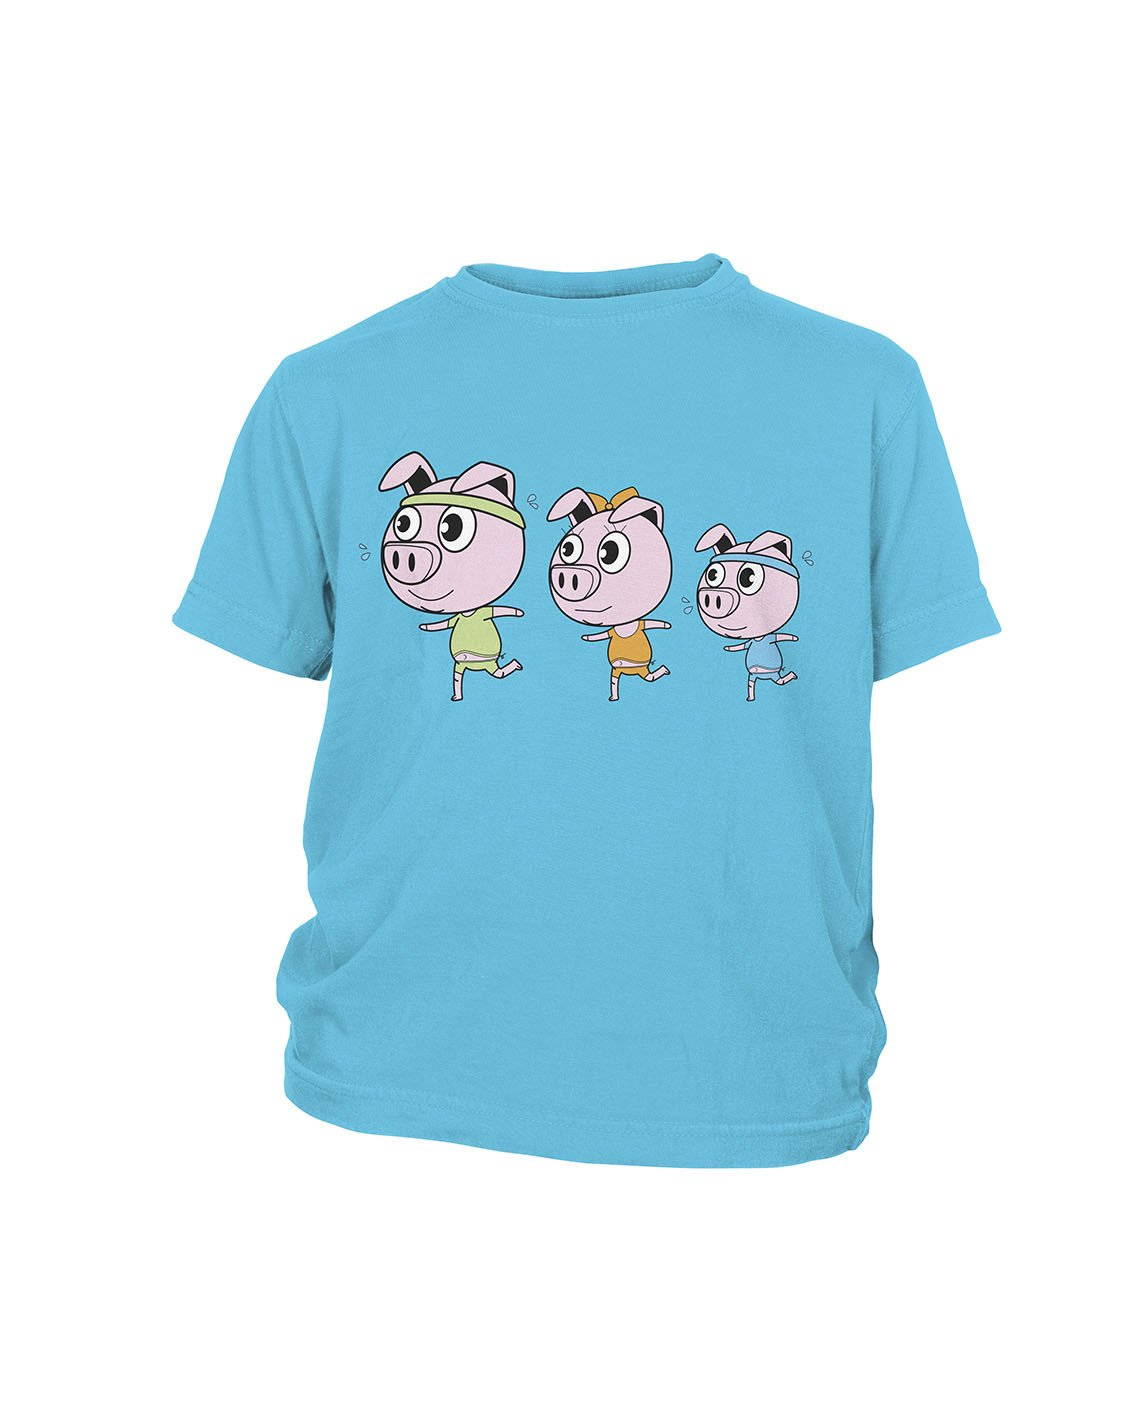 3 Little Pigs - Run, New Apparel,Kids - Originalitees